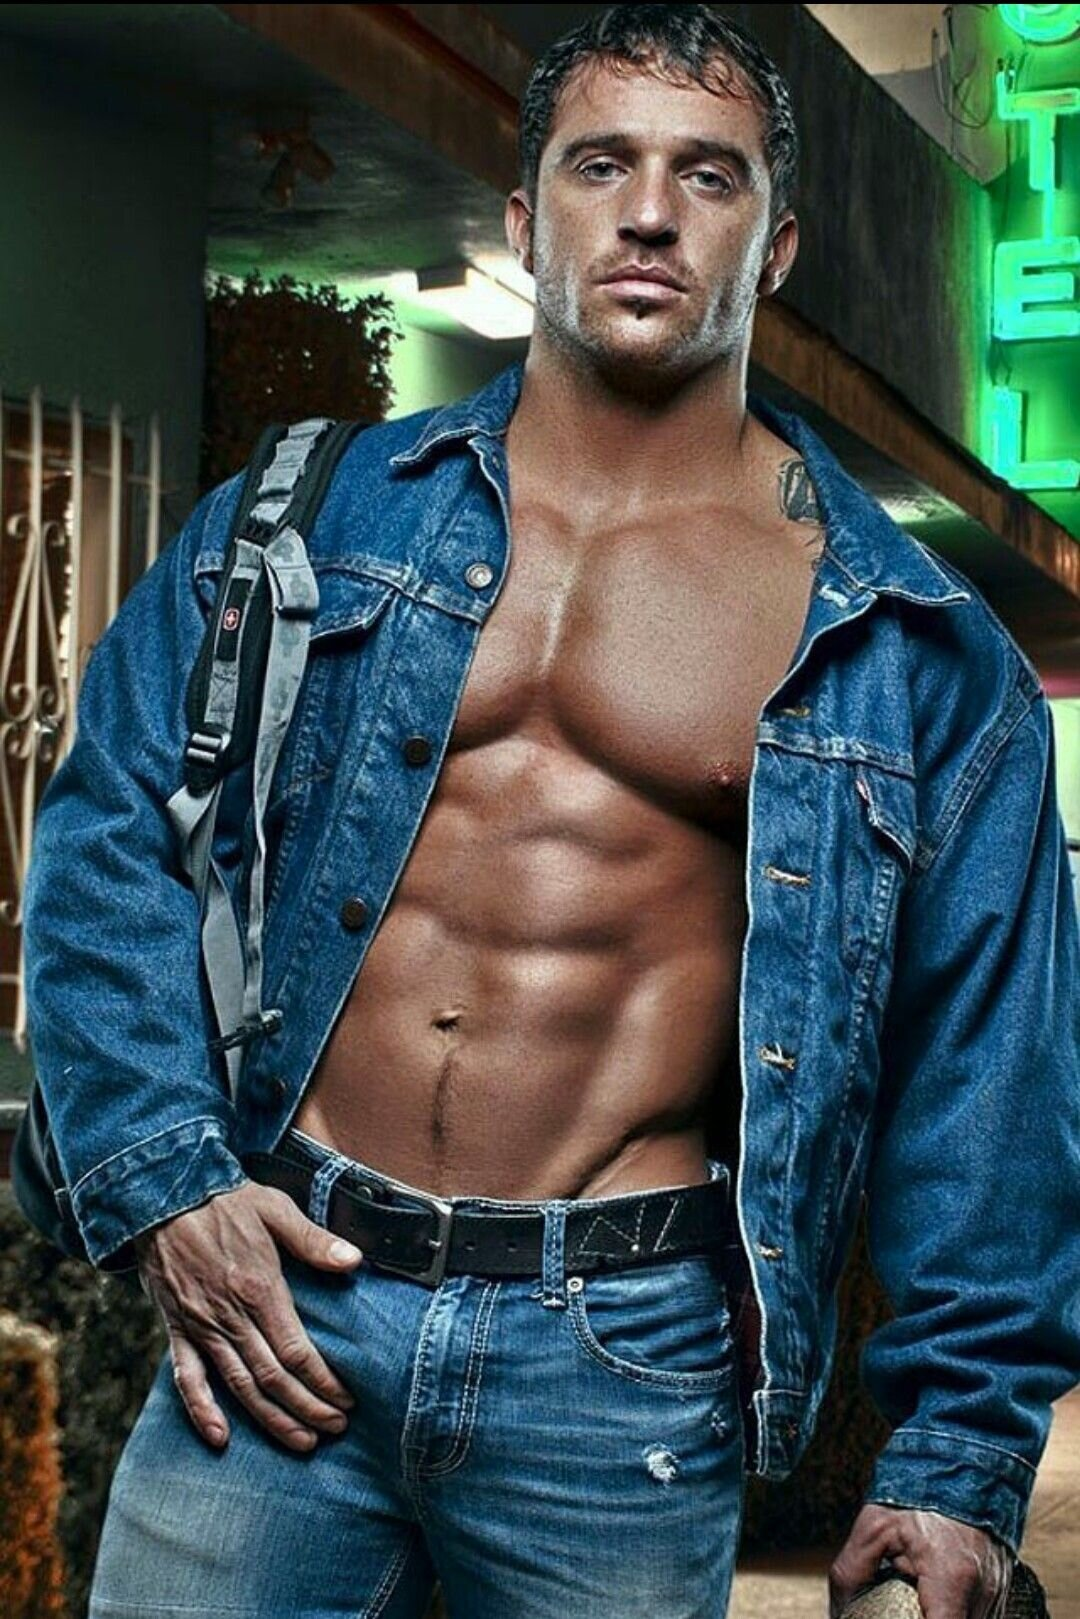 Sexy guy jeans, niquer petite cul